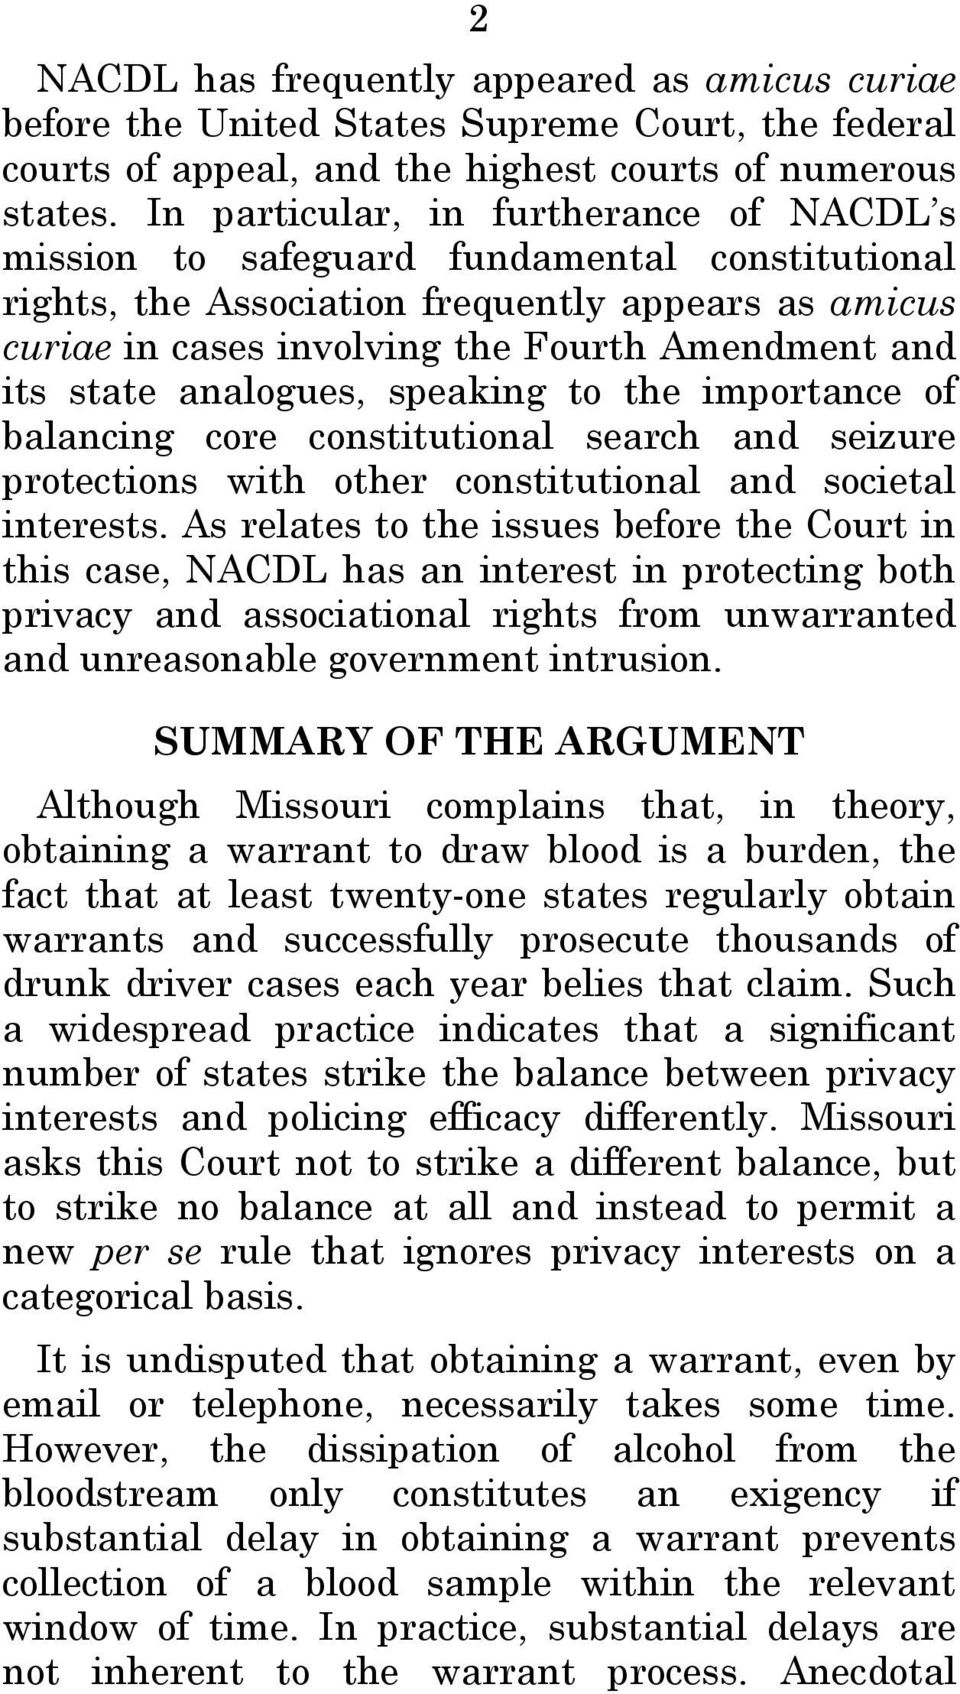 state analogues, speaking to the importance of balancing core constitutional search and seizure protections with other constitutional and societal interests.